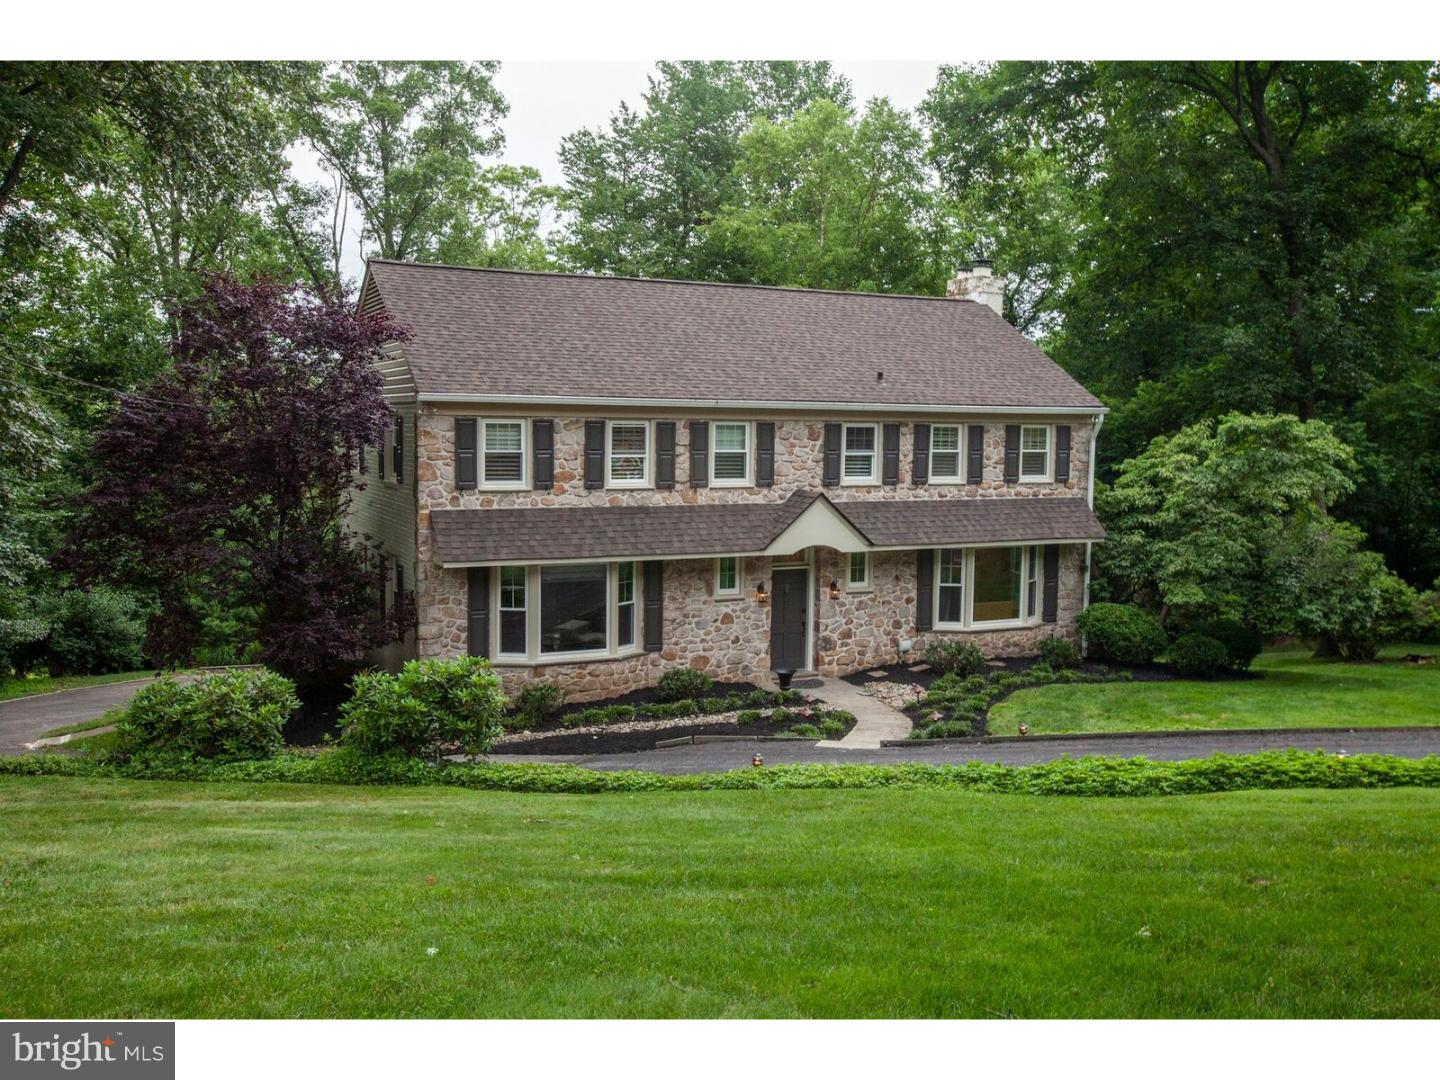 Photo of 128 Kynlyn Road, Wayne PA